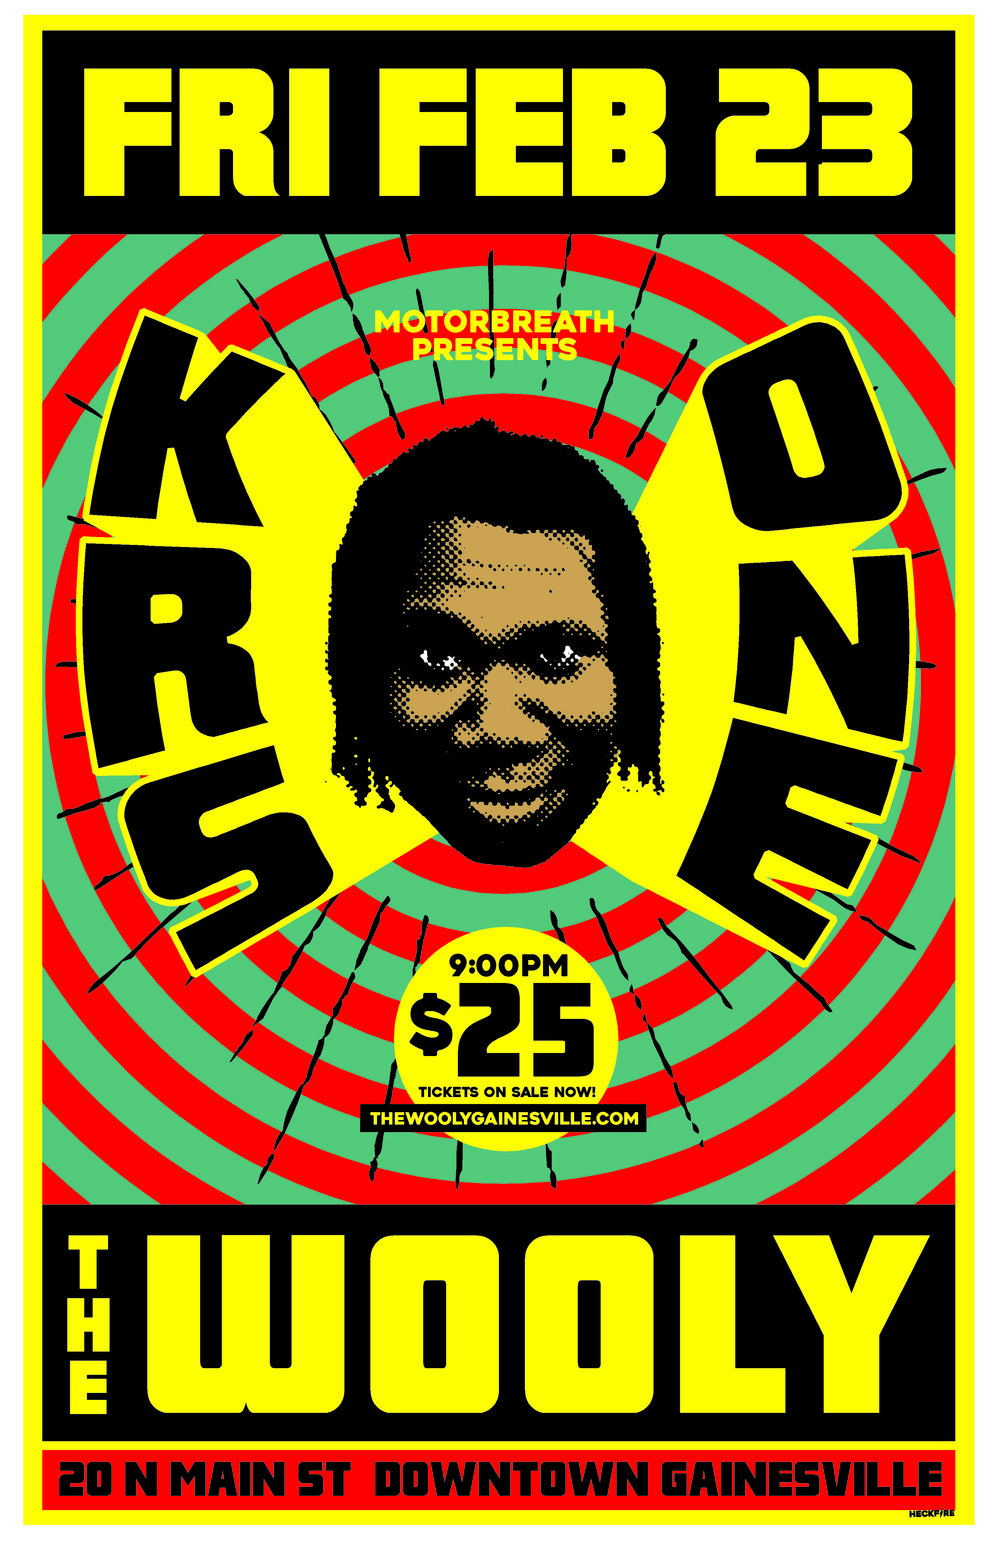 Motorbreath Presents: Friday, February 23rd  Krs One   Live at The Wooly! + more TBA Doors at 9pm $25 (18+ only)   Buy Tickets    HIP HOP ICON Lawrence Krisna Parker is better known by his stage names KRS-One (an acronym for Knowledge Reigns Supreme Over Nearly Everyone), and Teacha.  At the 2008 BET Awards, KRS-One was the recipient of the Lifetime Achievement Award for all his work and effort towards the Stop the Violence Movement as well as the overall pioneering of hip hop music and culture.  Lawrence Parker was born in Flatbush, Brooklyn, New York during the summer of 1965. Parker left home at 16 to become an MC, coming to live at a homeless shelter in the South Bronx where he was dubbed Krishna by residents because of his interest in the Hare Krishna spirituality of some of the antipoverty workers. By the time he met youth counselor Scott Sterling, he was also writing graffiti as KRS-One (Knowledge Reigns Supreme Over Nearly Everyone). Together he and Sterling, a.k.a. DJ Scott La Rock eventually created Boogie Down Productions, releasing their debut album, Criminal Minded, in 1987. KRS-One has been a vegetarian since his youth.  KRS One the lyrical legend drops his new 2017 album 'The World Is Mind'. KRS One brings that Boom Bap back, with tracks like; 'Raw BEAT' and the graffiti tribute 'Out for Fame'. In addition KRS One celebrates the South African clique langue on 'Keep It Clicking' and shares ancient wisdom on the title track 'The World Is Mind'. This is another banger from the Hip Hop legend.